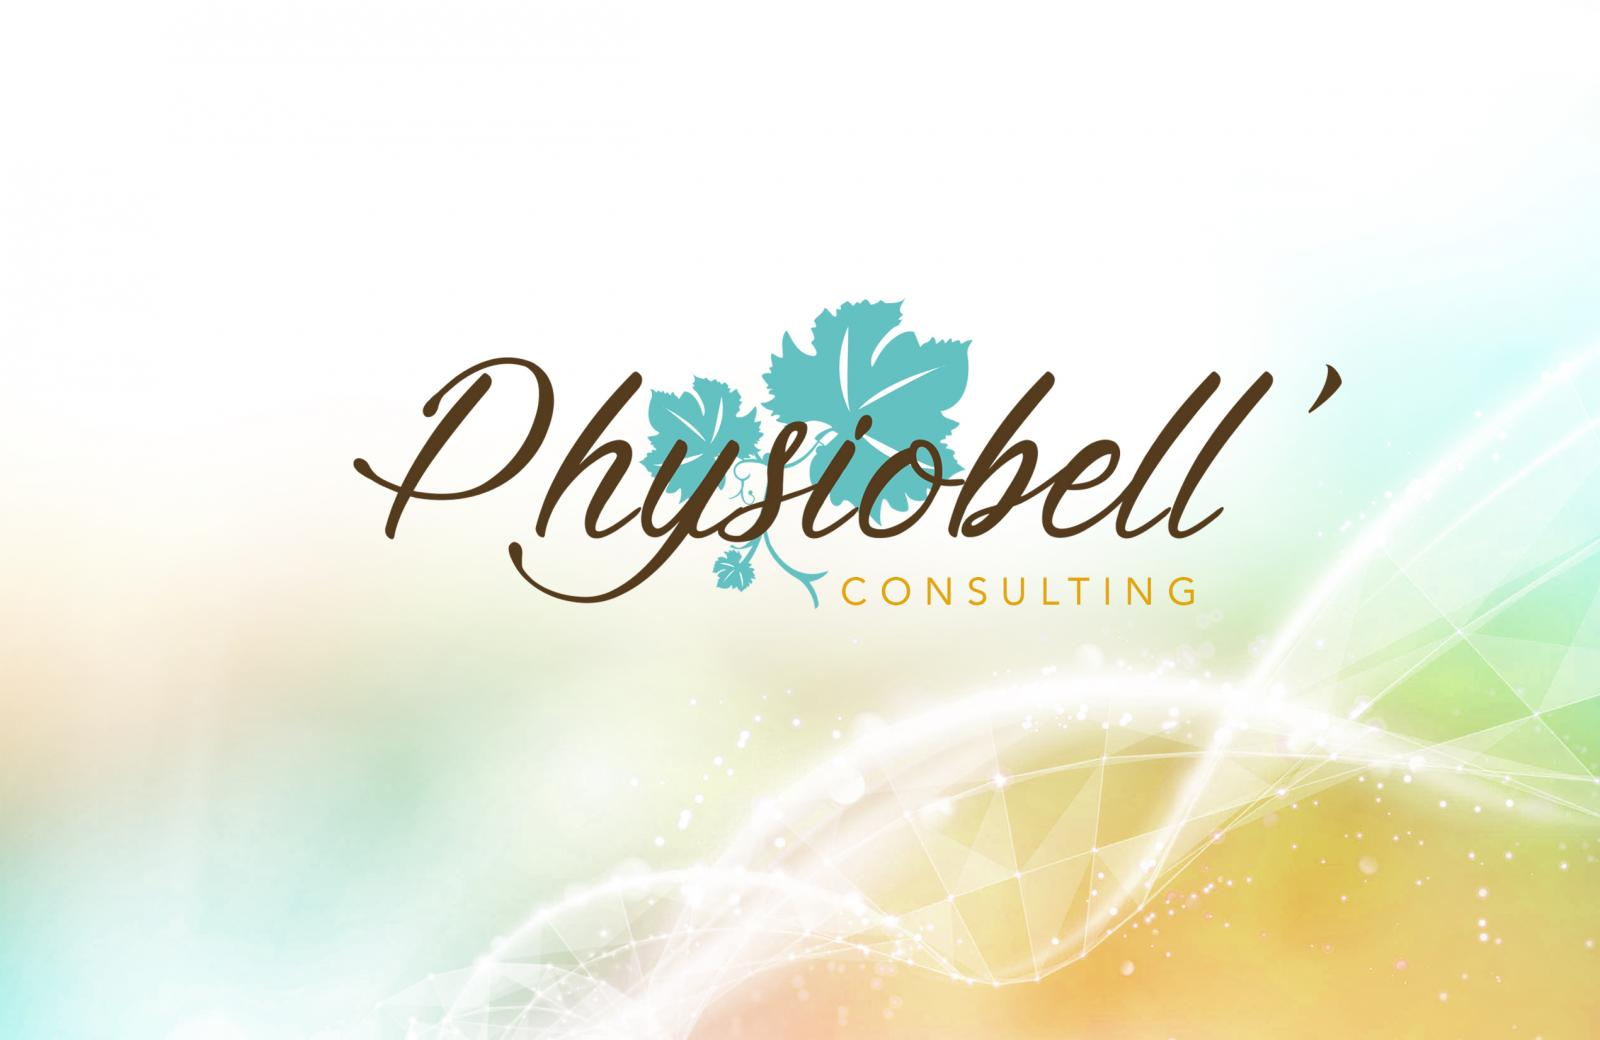 Physiobell' consulting